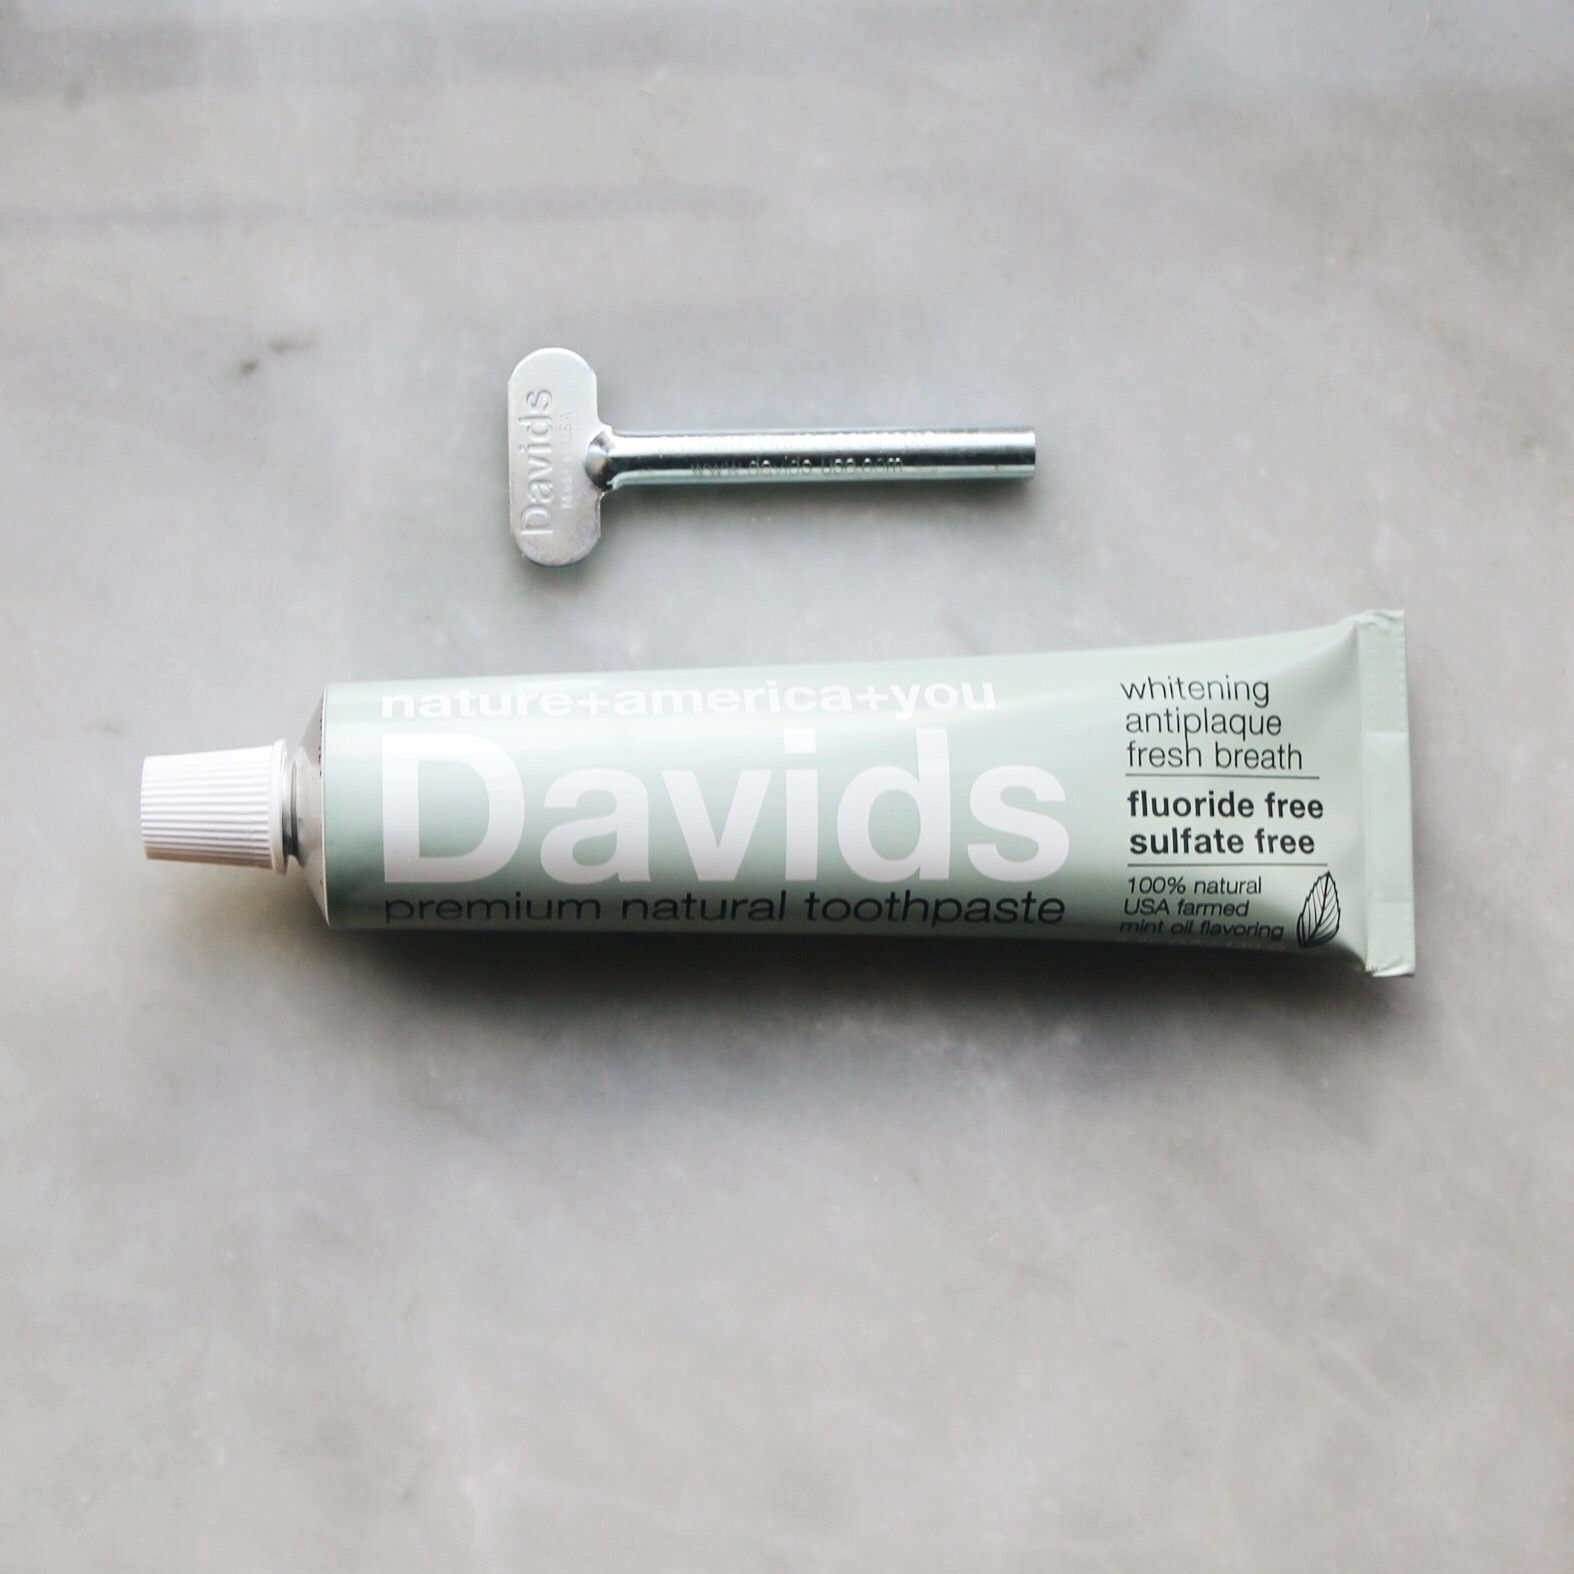 Davids Natural Toothpaste Review + Giveaway, Davids, Davids Toothpaste, Davids Natural Toothpaste, Natural Toothpaste